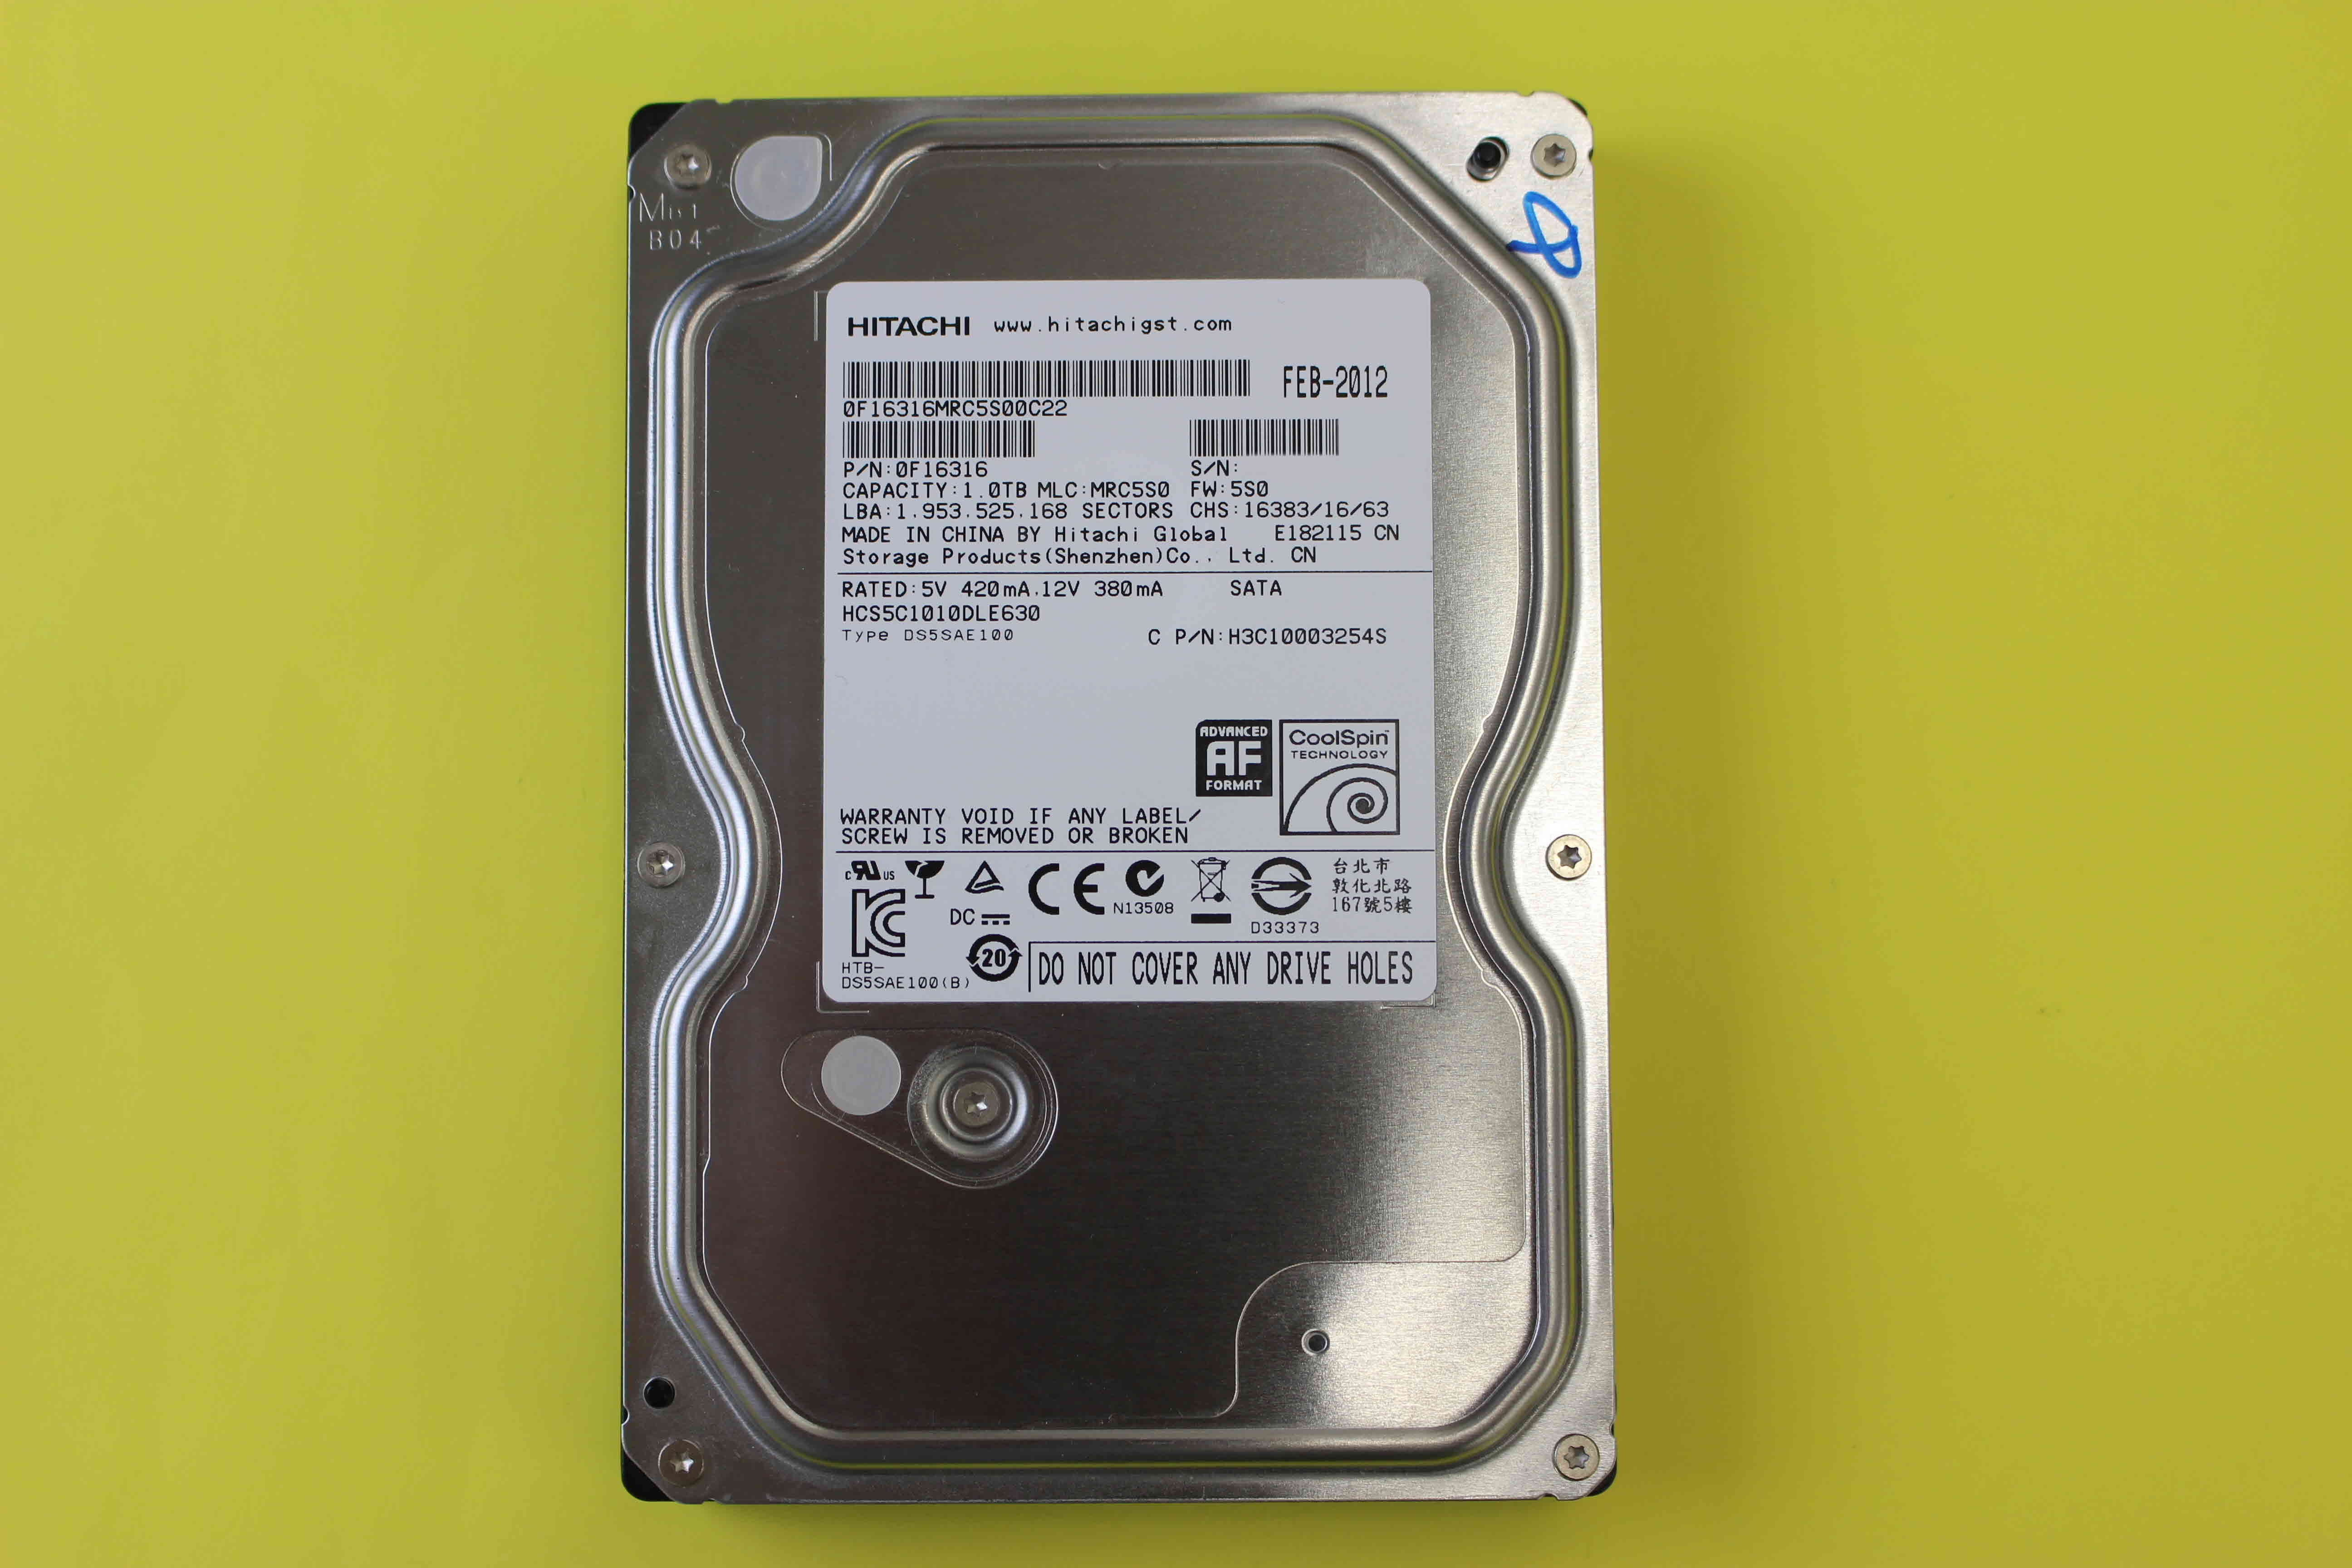 hcs5c1010dle630-recovery